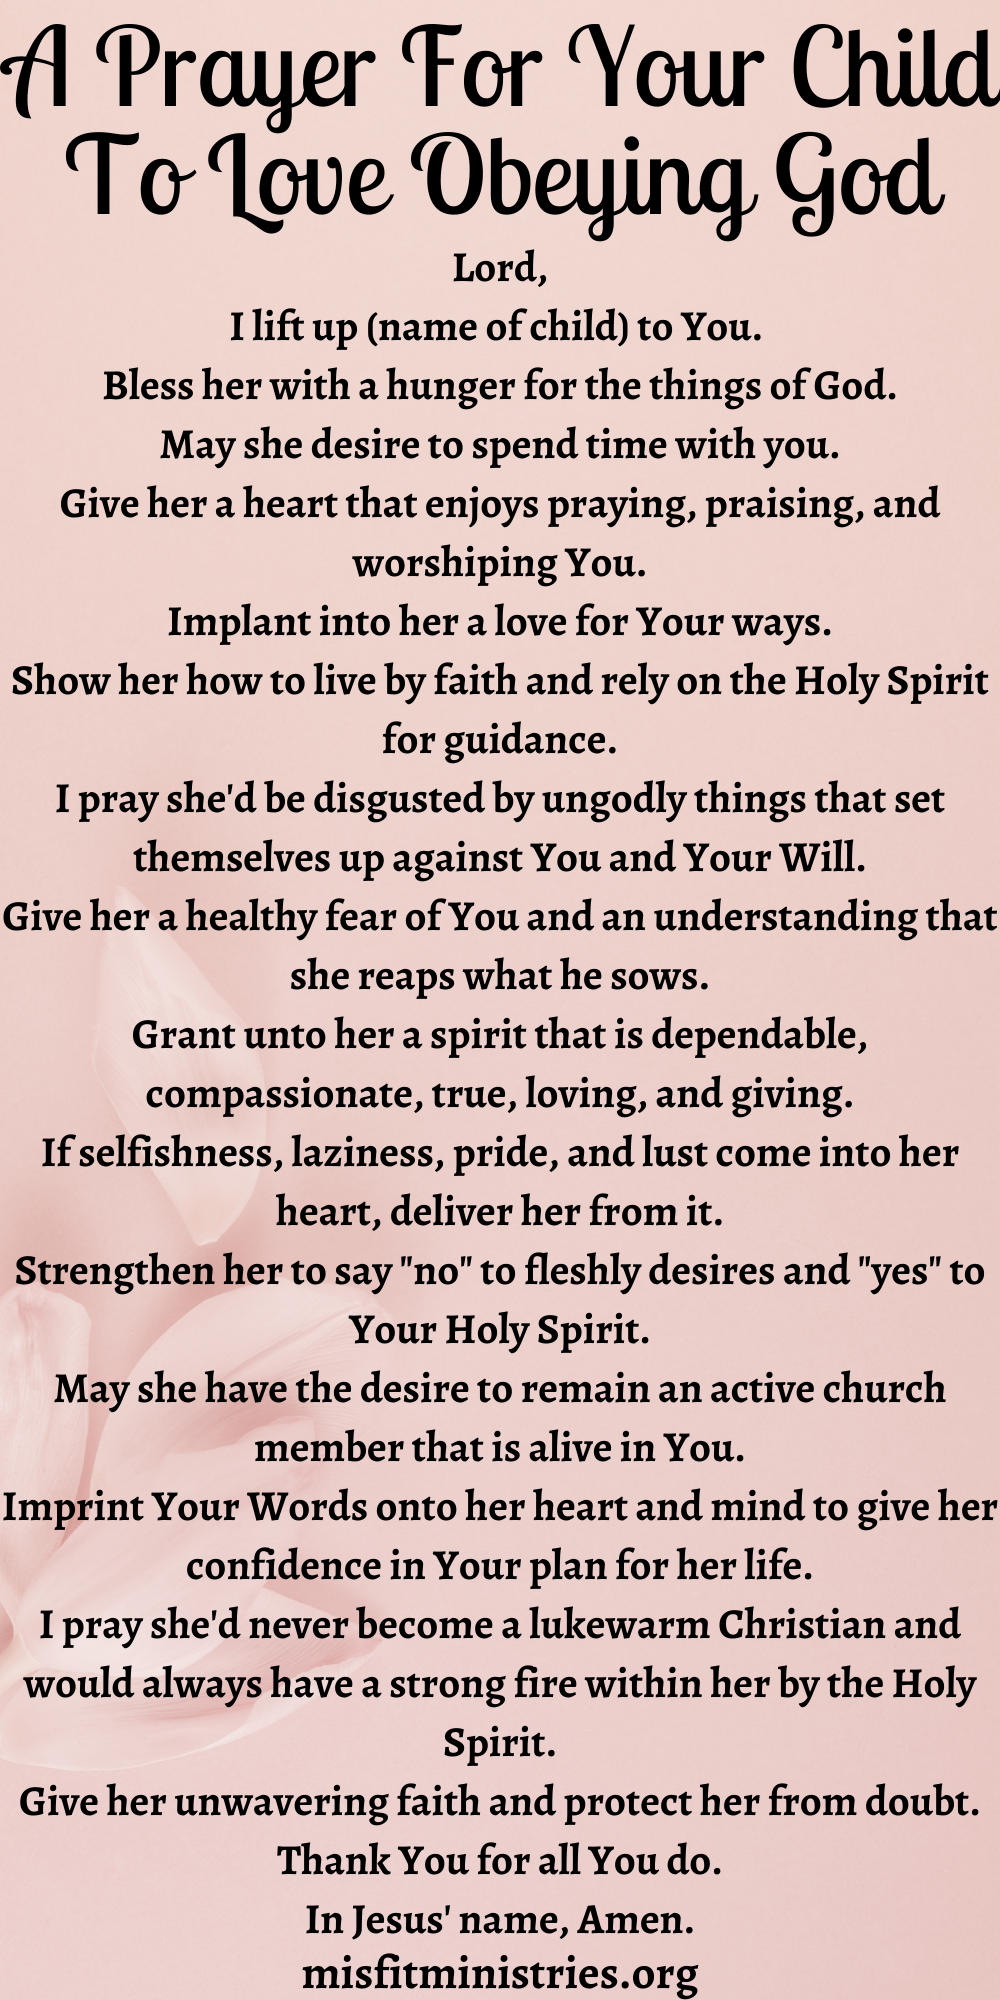 A Prayer For Your Child To Love Obeying God